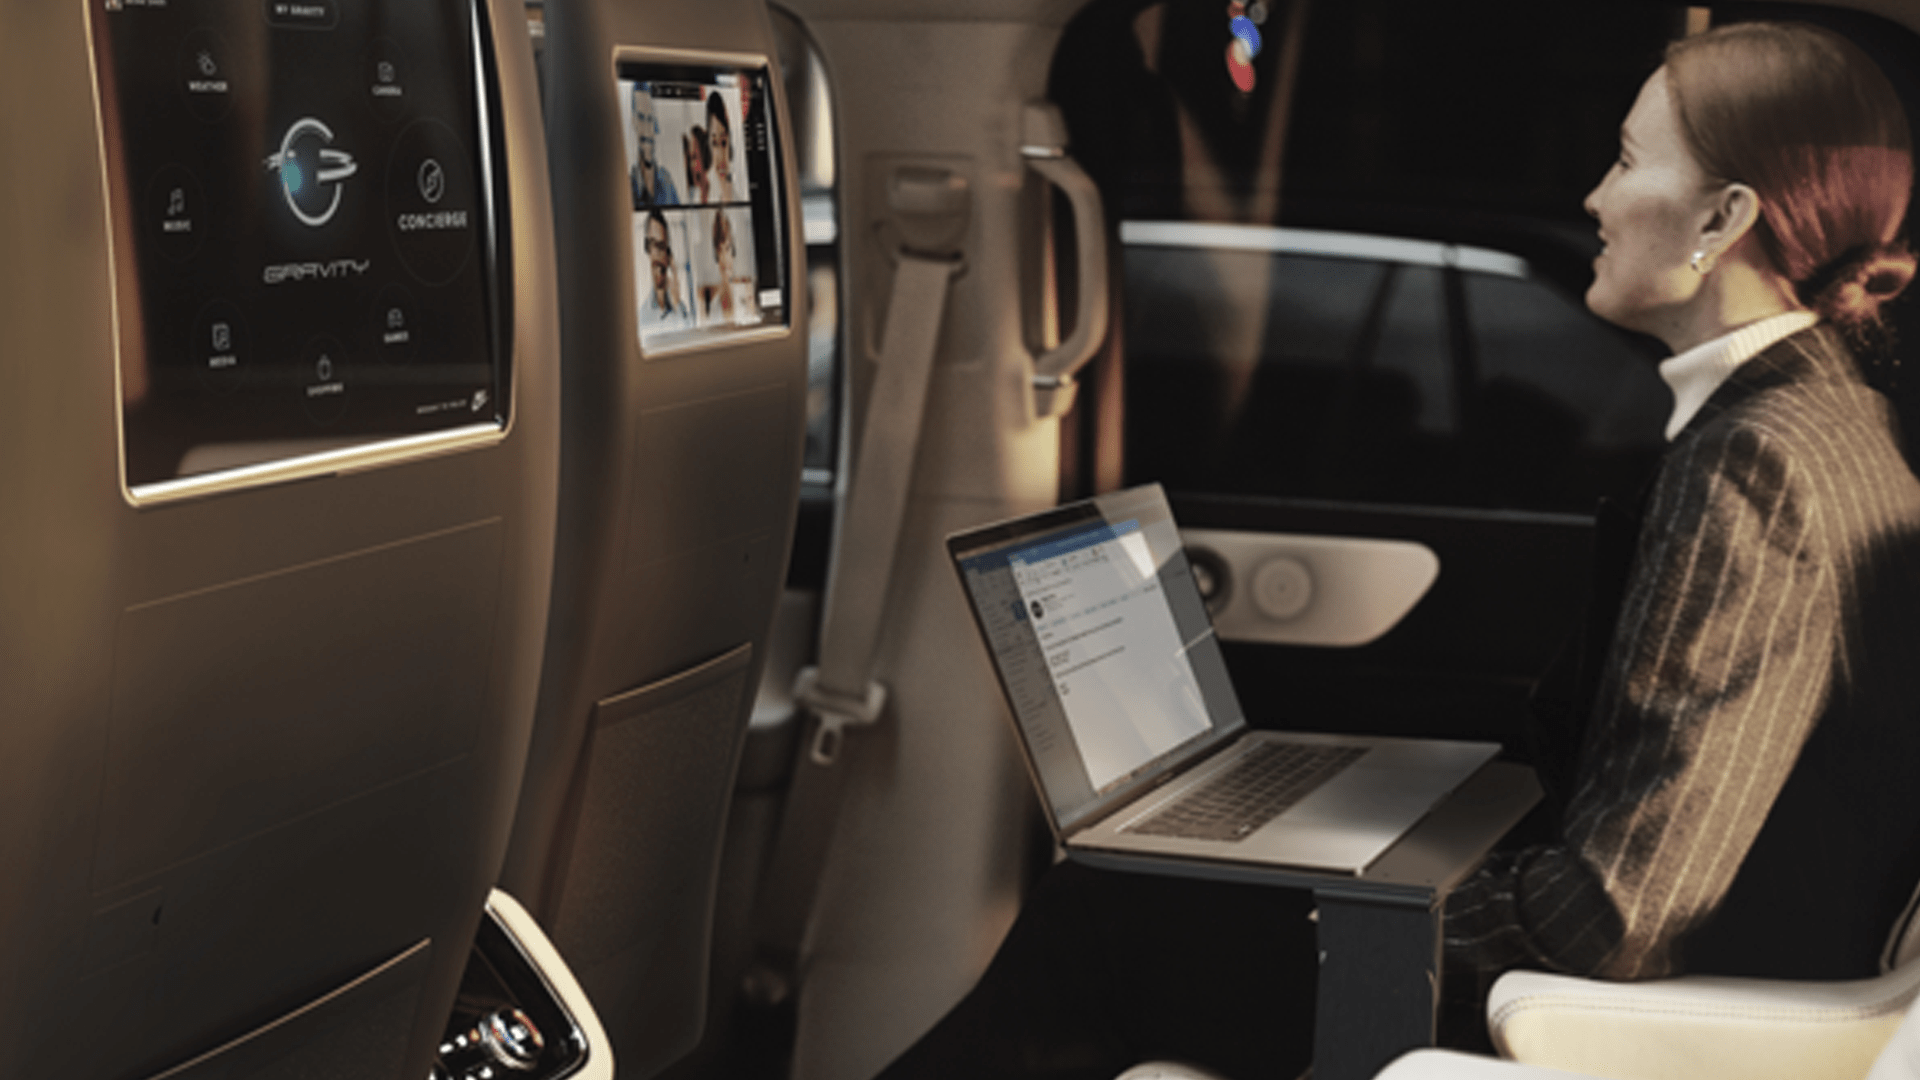 First class ground transportation focused on the health, safety and technology needs of the modern traveler. Gravity is a reservation-based service, tied to a mobile app.